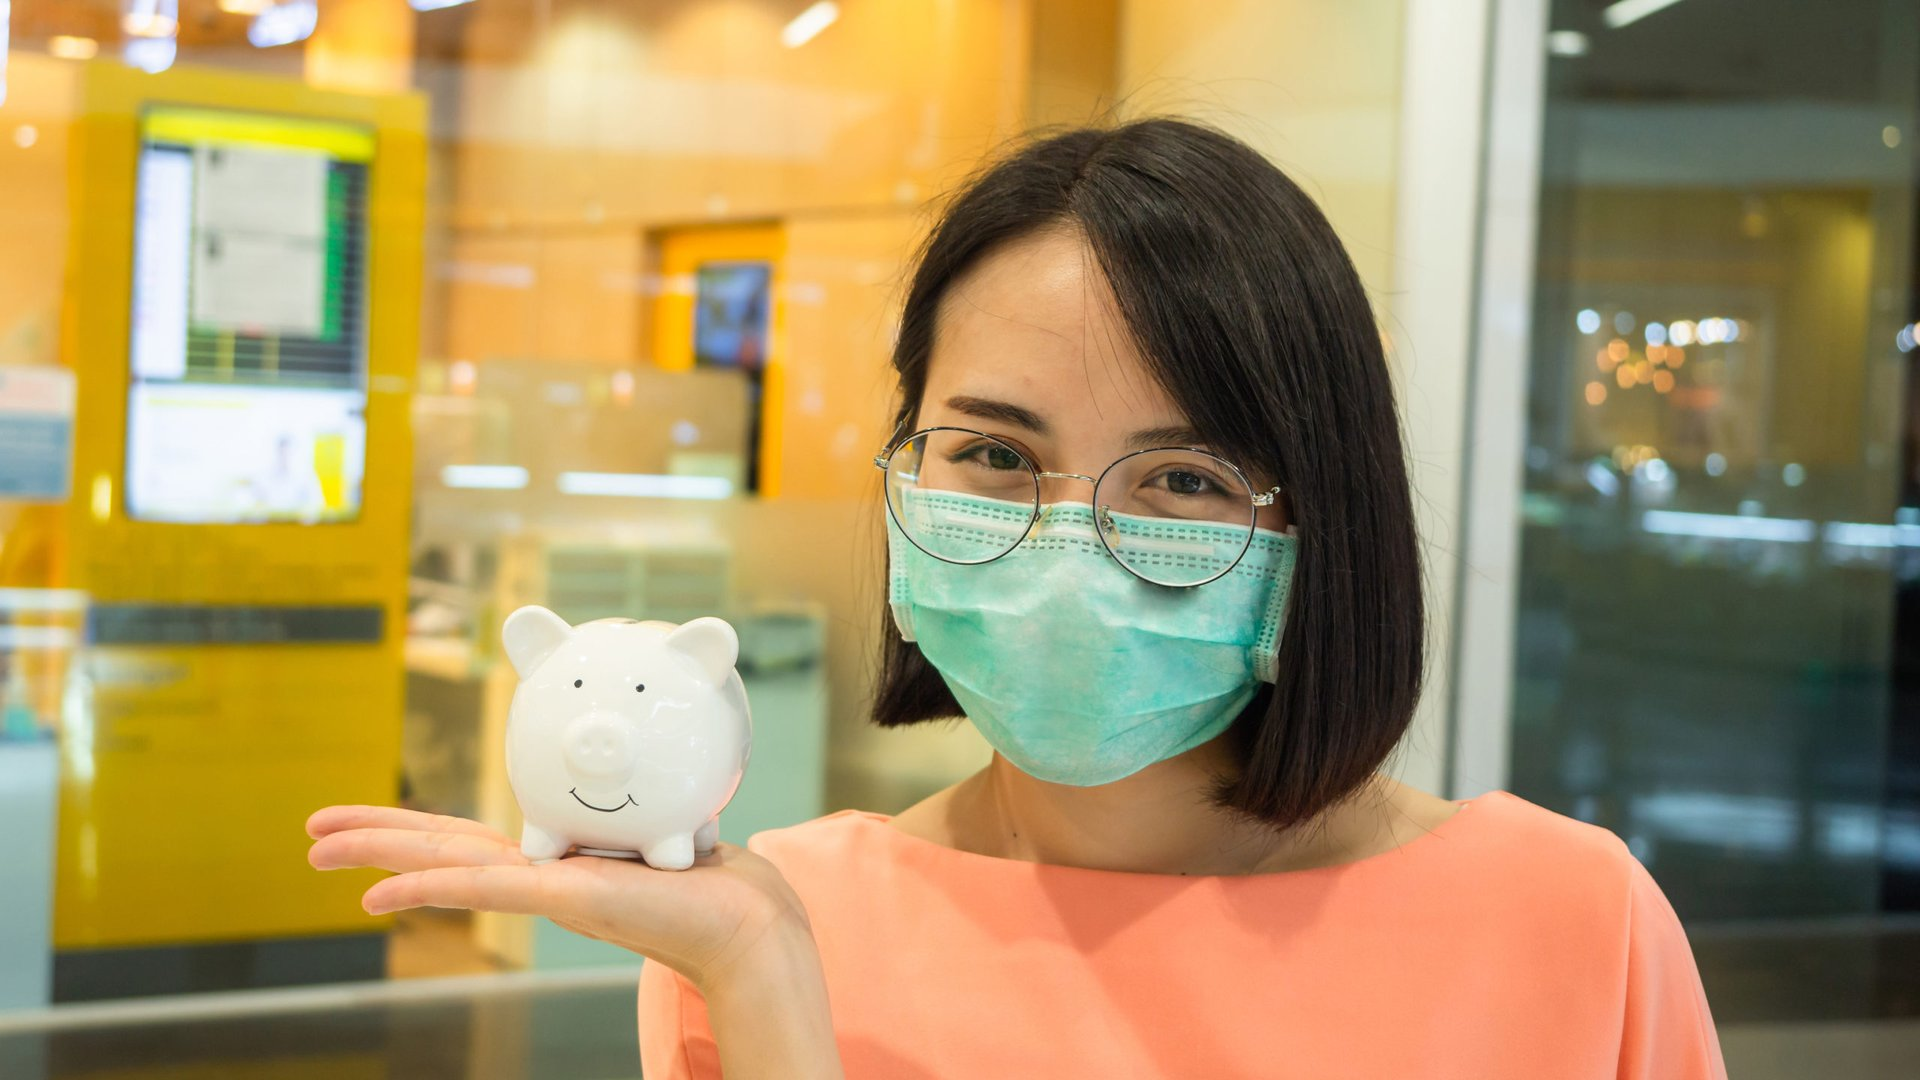 A woman in a mask holds a piggy bank at a bank